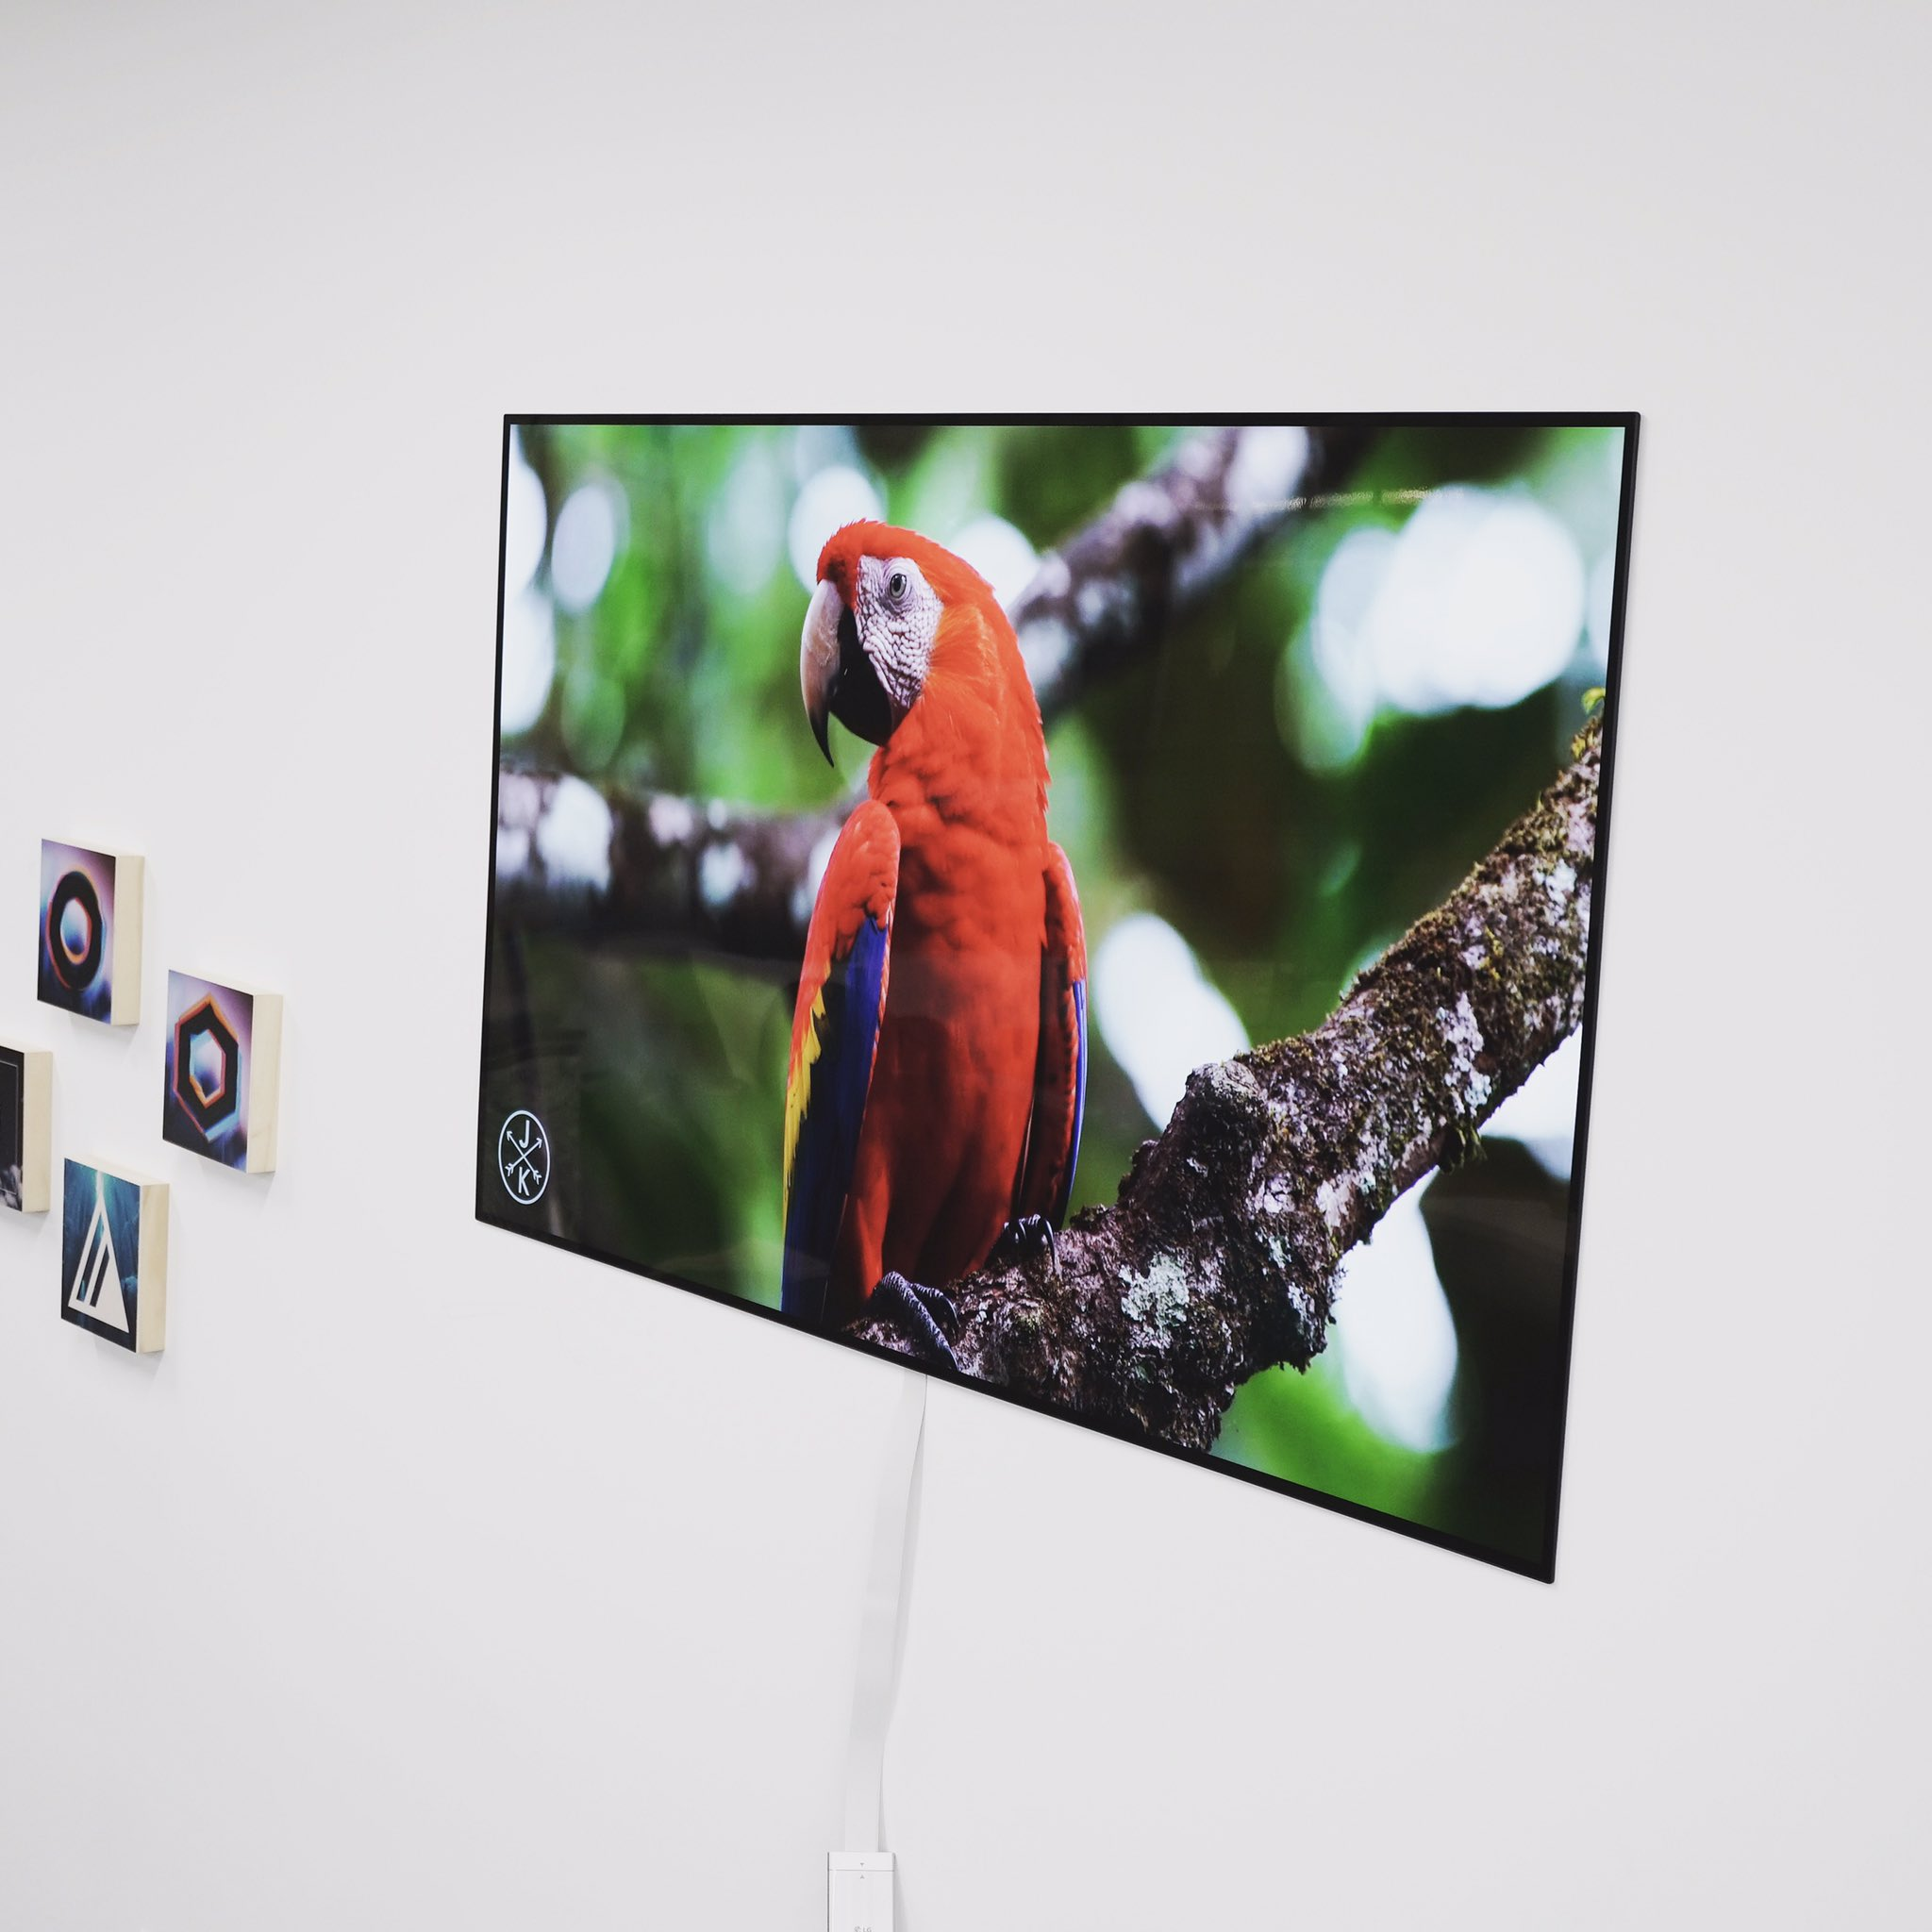 """Marques Brownlee on Twitter: """"LG 4K OLED W is in the ..."""